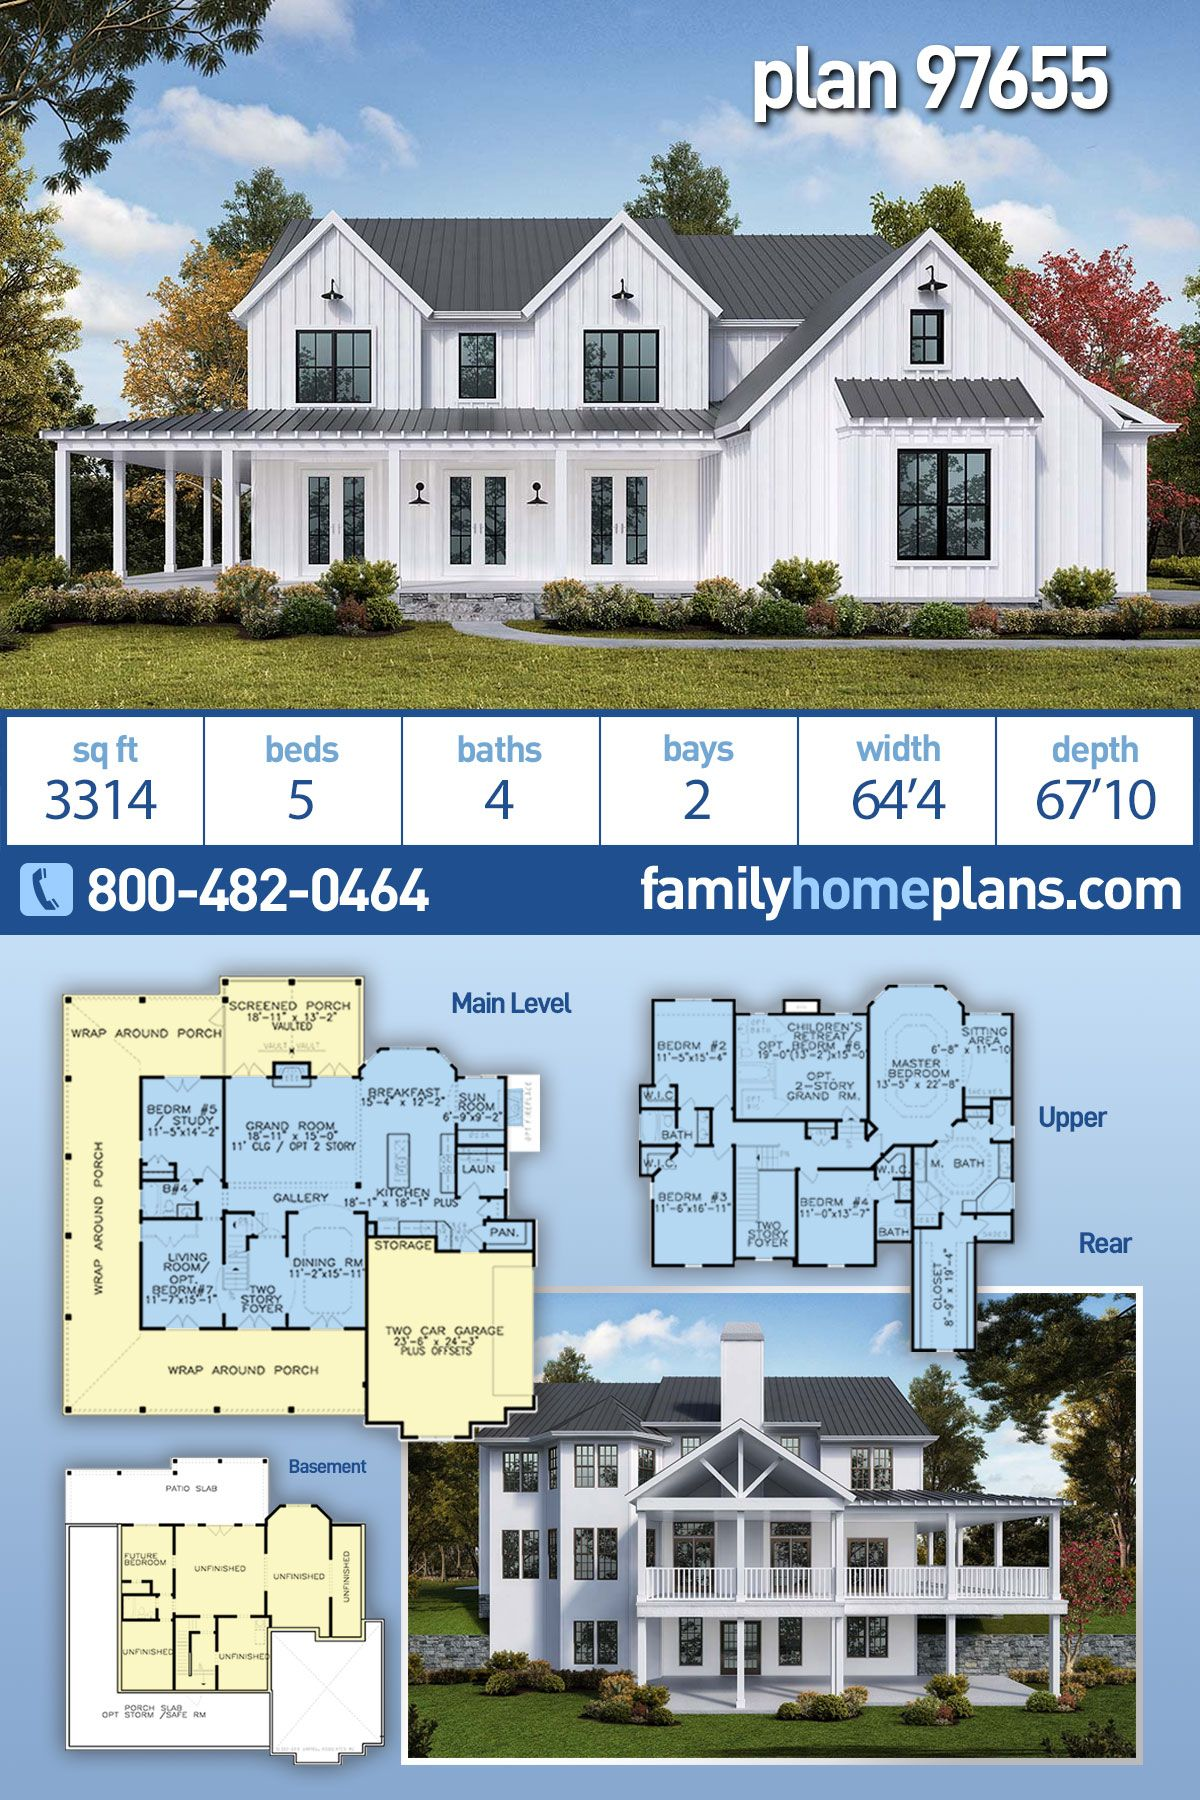 Southern Style House Plan 97655 With 5 Bed 4 Bath 2 Car Garage Ranch Style House Plans Farmhouse Plans House Plans Farmhouse